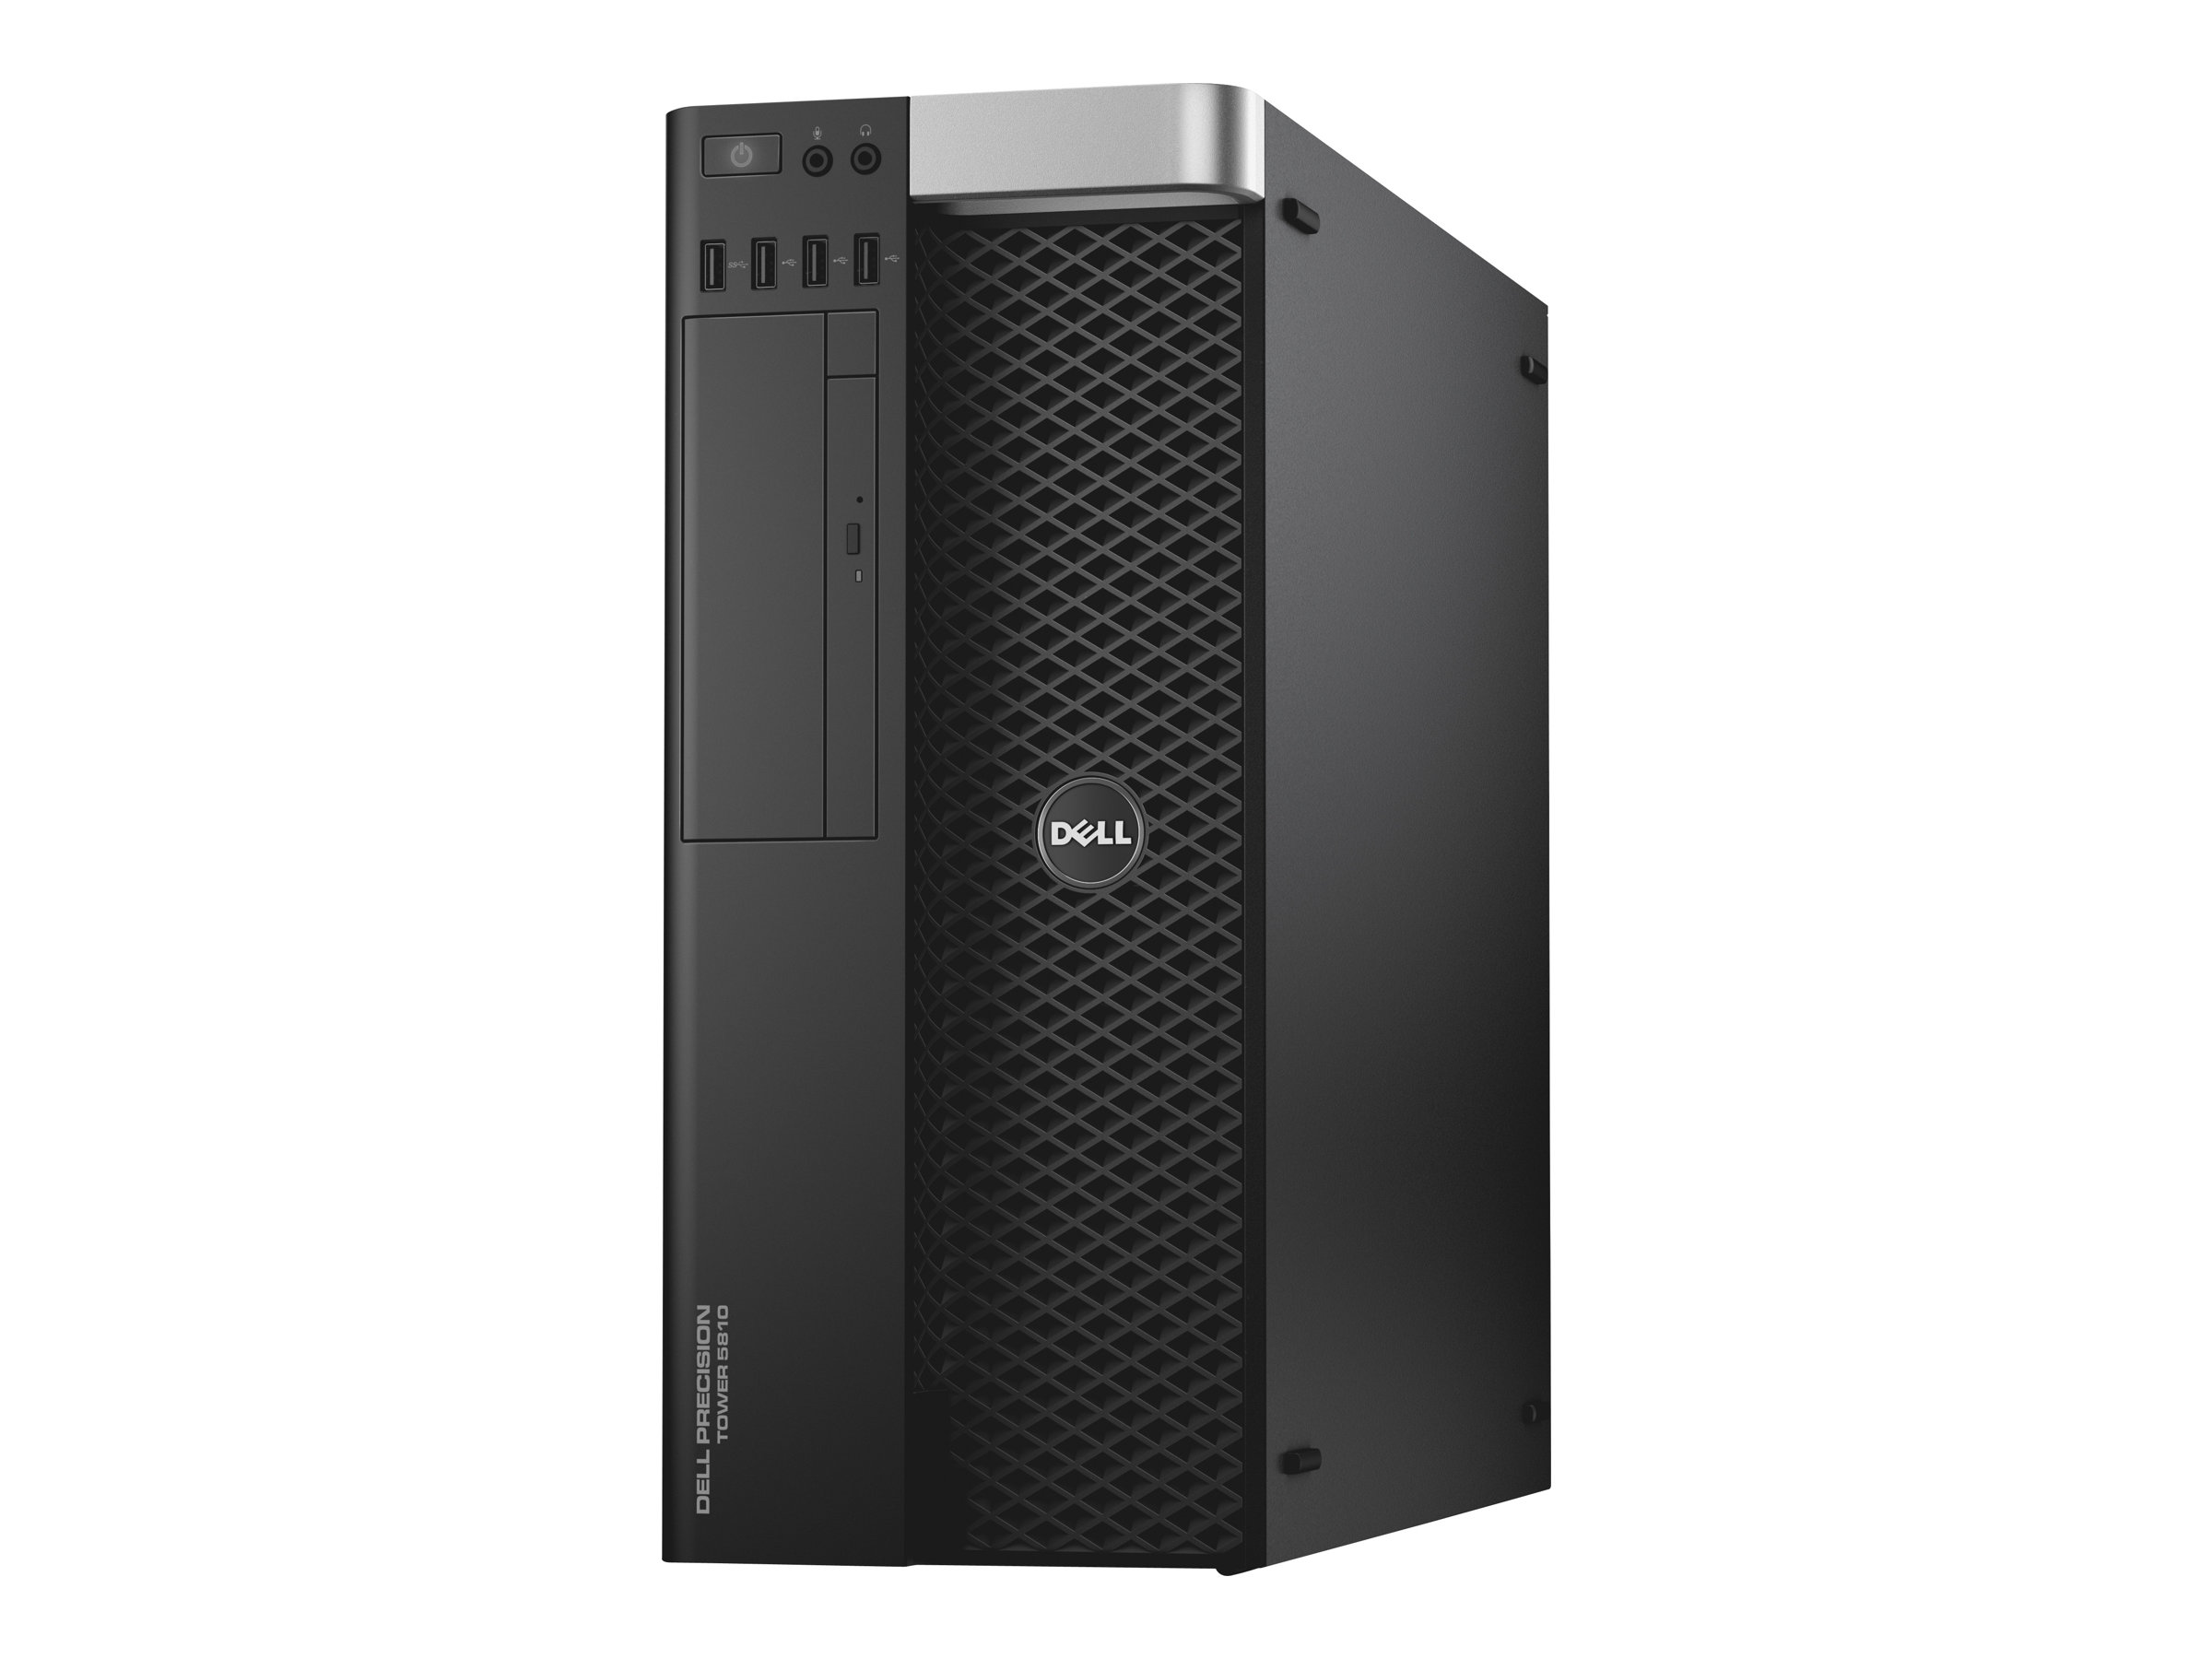 Dell Precision Tower 5810 - MDT - 1 x Xeon E5-1650V3 / 3.5 GHz - RAM 16 GB - SSD 512 GB - DVD-Writer